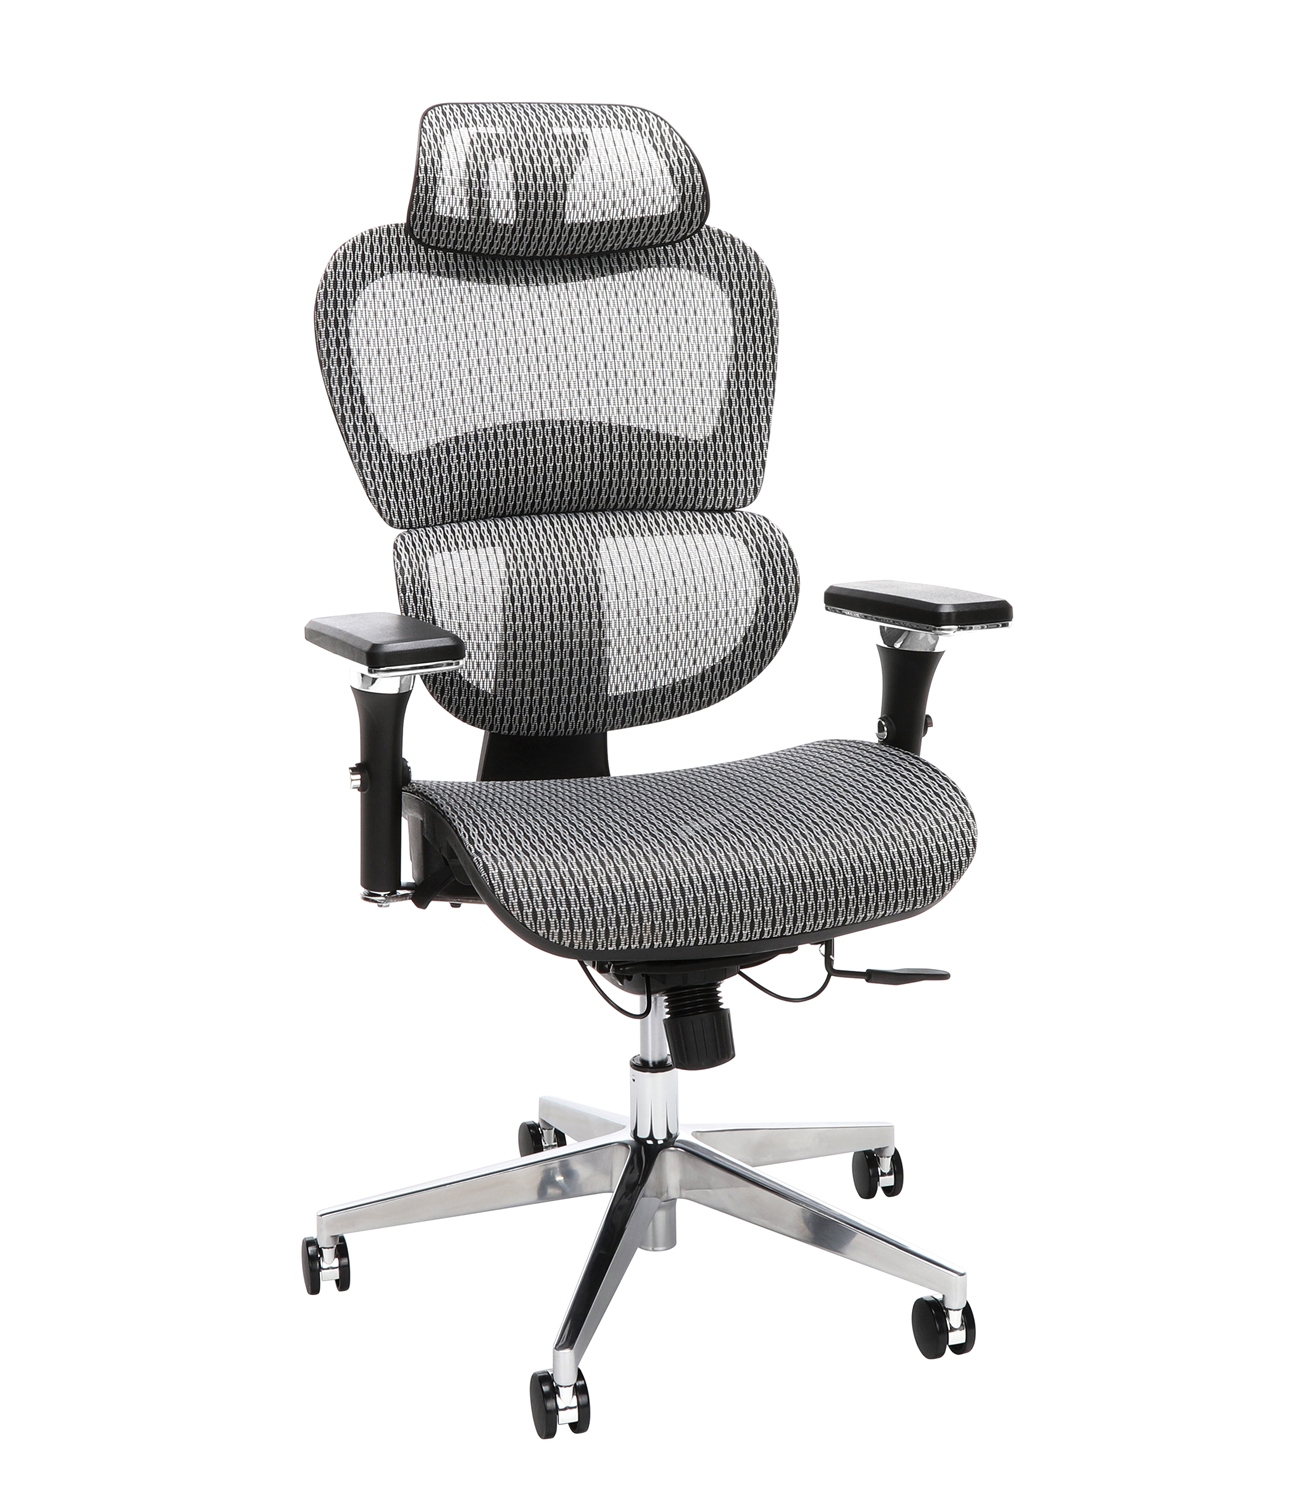 Ofm Office Model 540 Core Collection Ergo Mesh Office Chair With Head Rest Gray